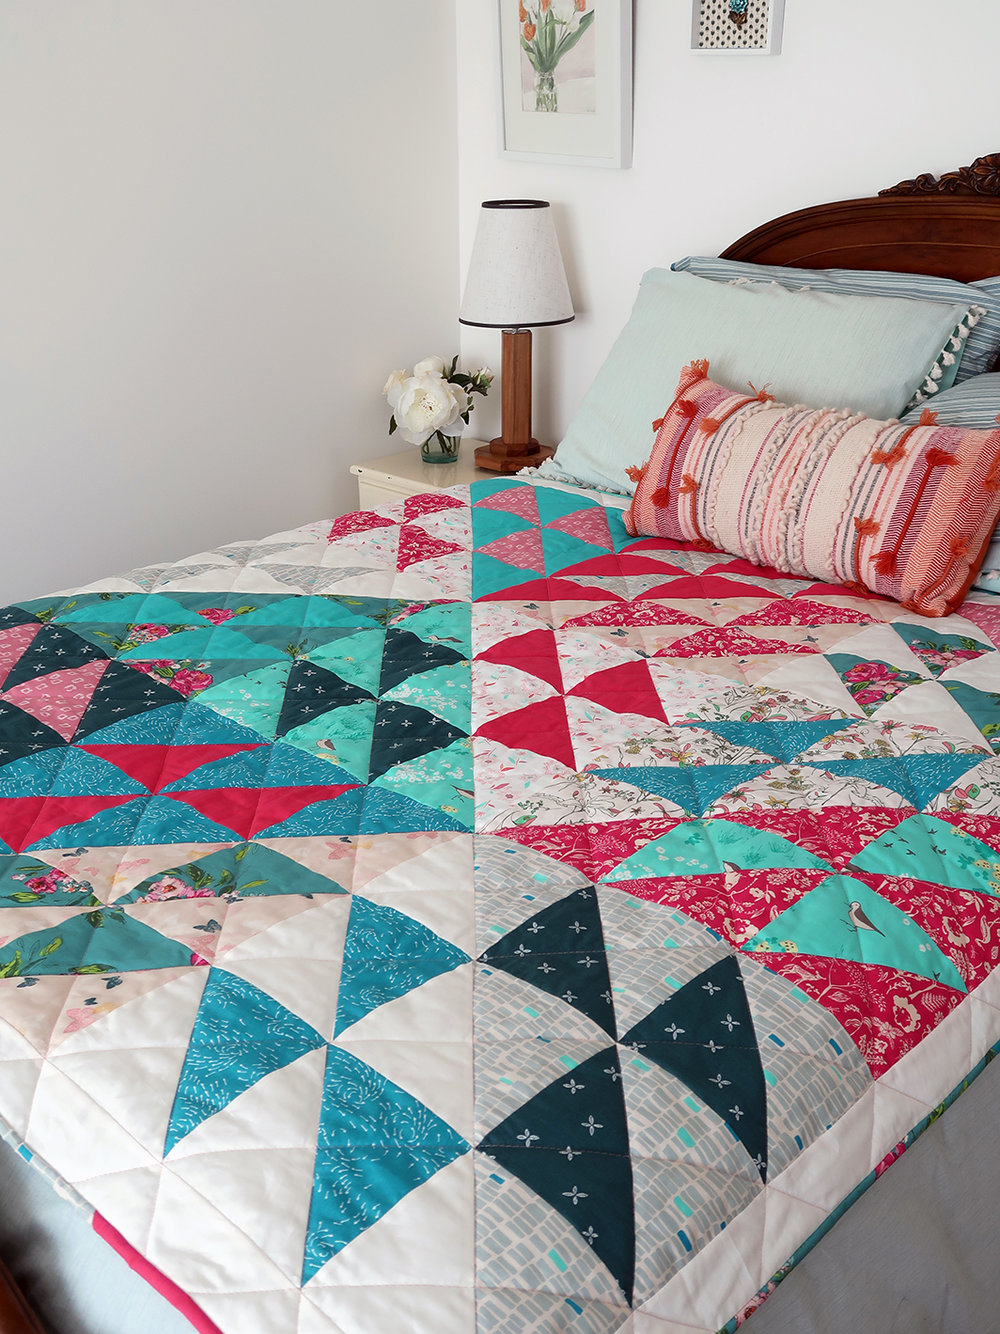 Feathered Nest Quilt 6.jpg